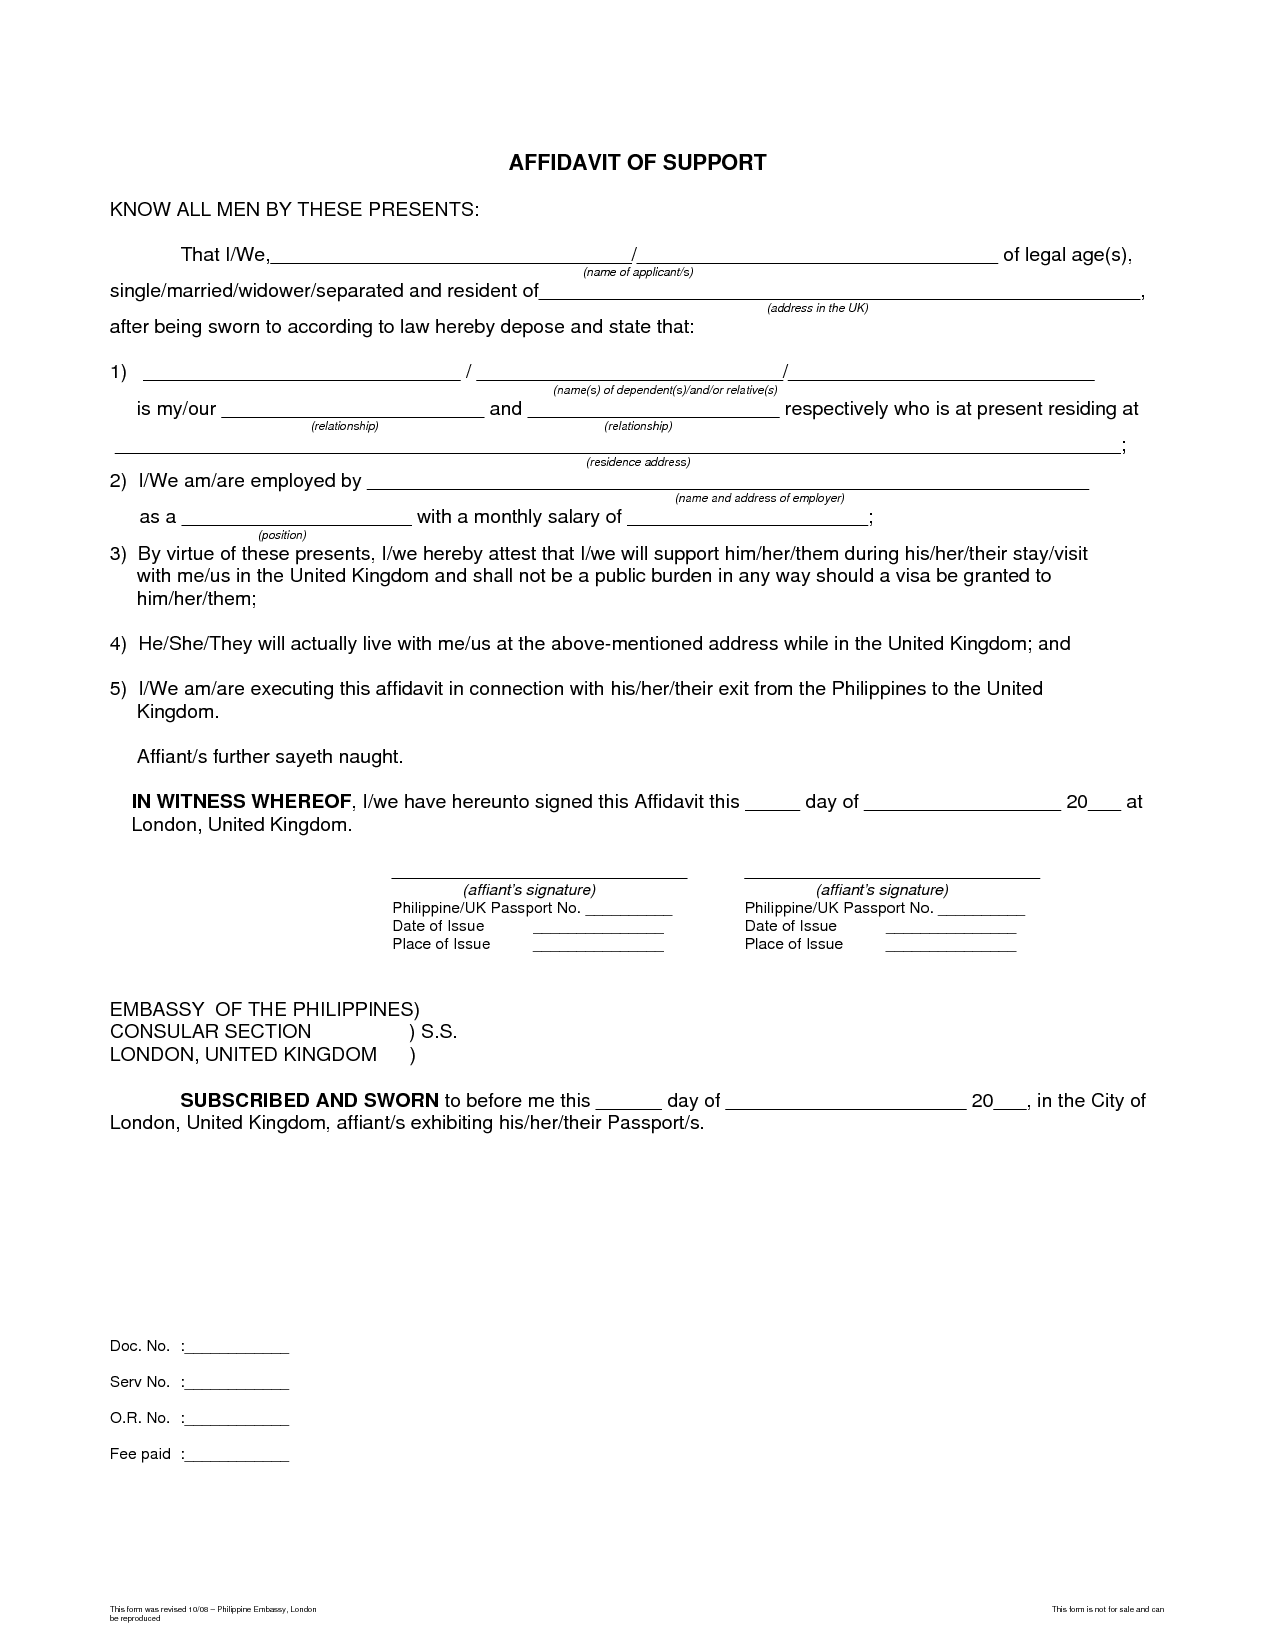 Affidavit Bagnas affidavit of support sample – Free Printable Affidavit Form